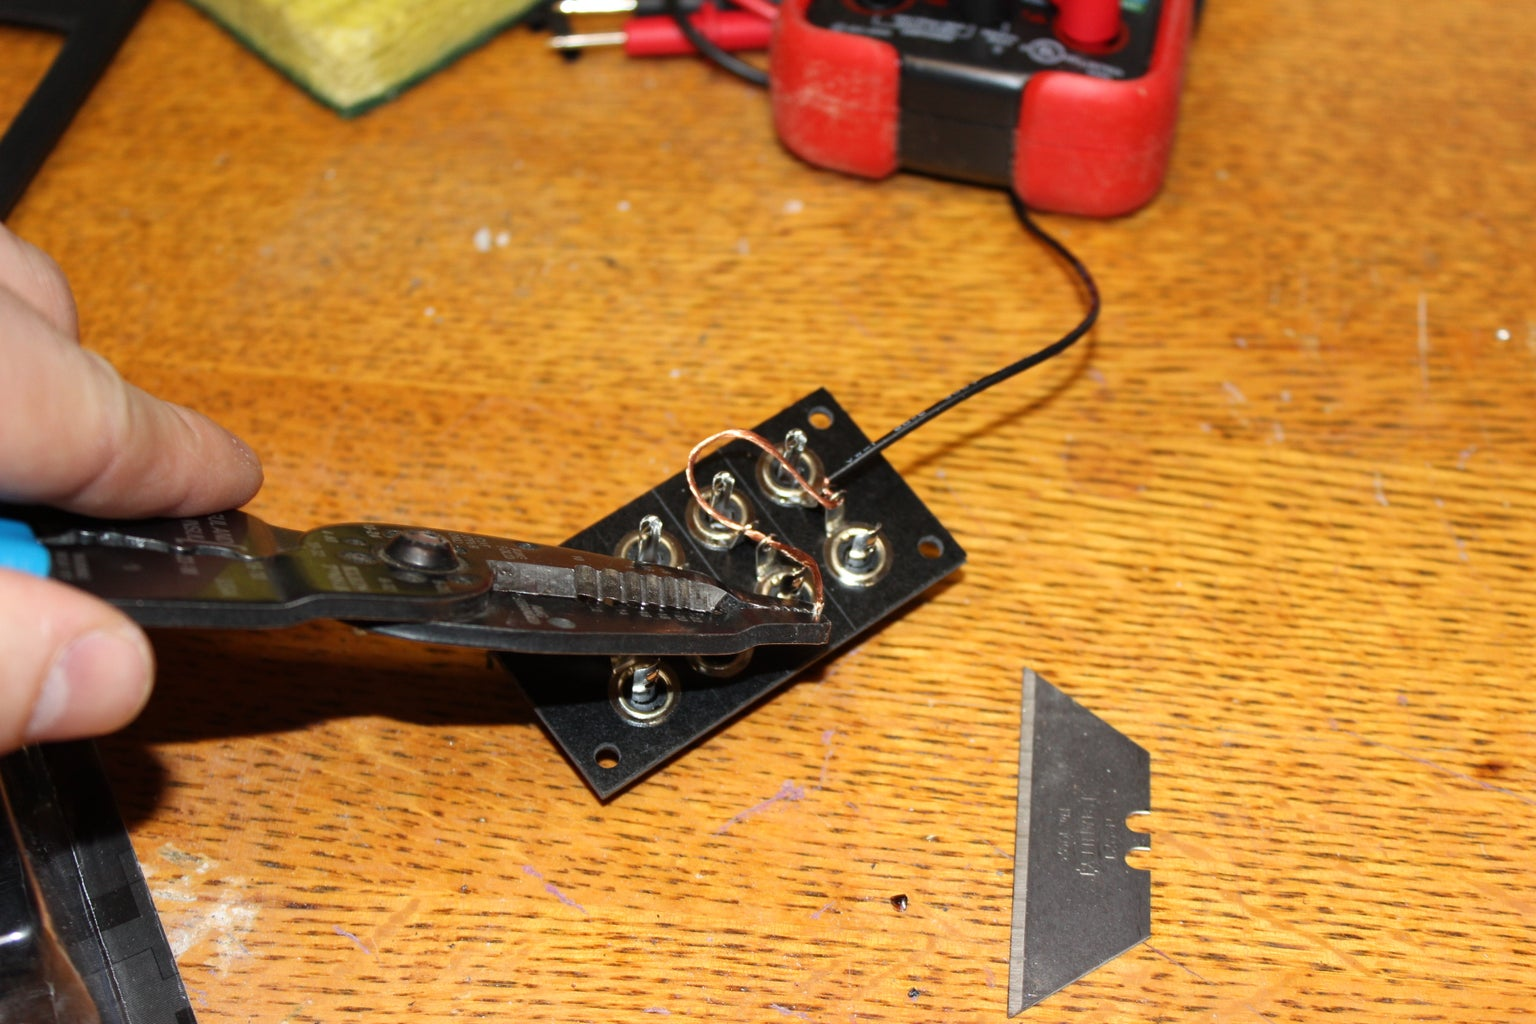 Wiring the Jack Boards